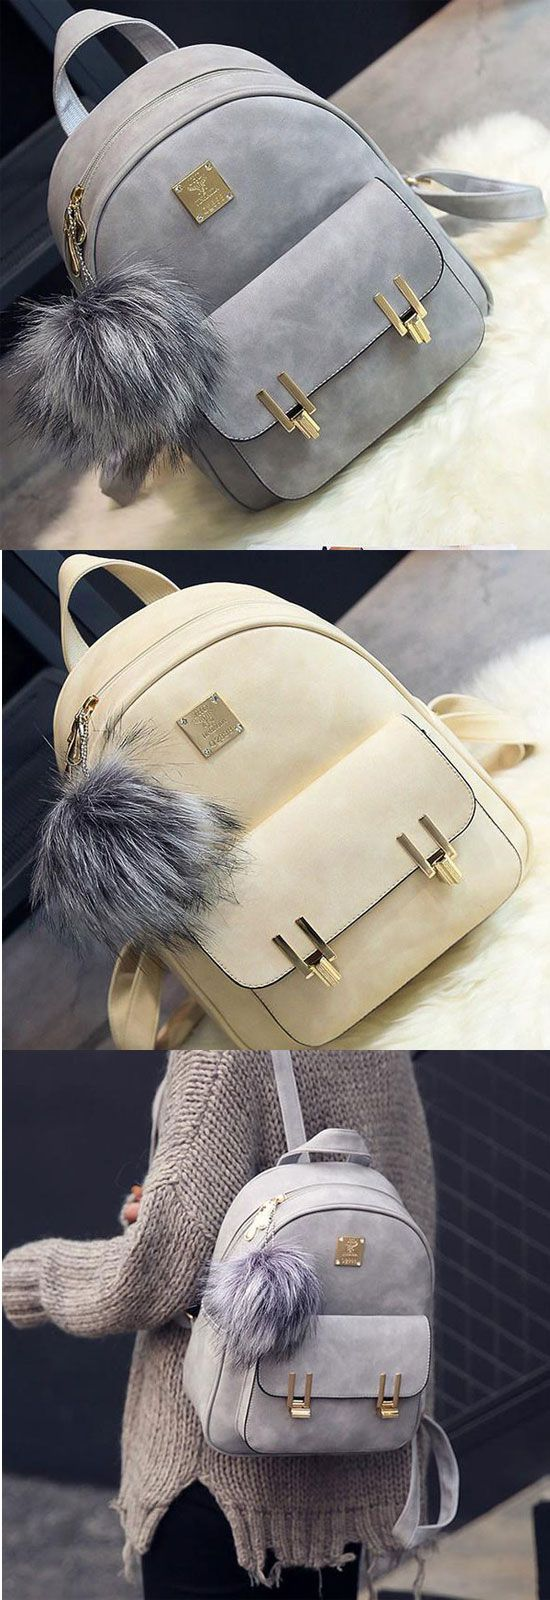 Which color do you like? Fashion Frosted PU Zippered School Bag With Metal Lock Match Backpack #lace #canvas #school #backpack #bag #college #student #fashion #rucksack #lady